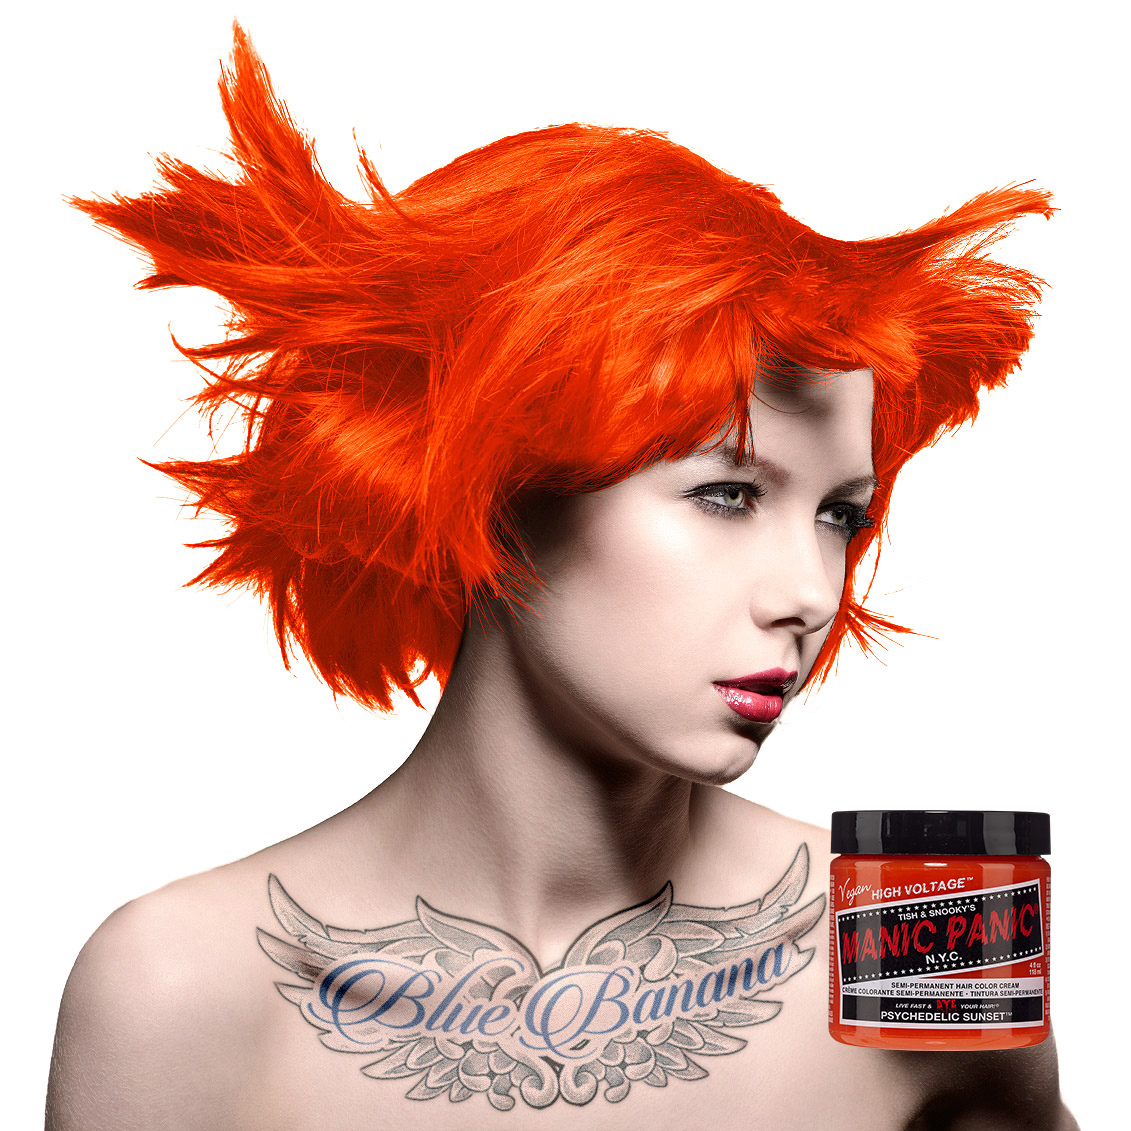 Manic Panic Classic Psychedelic Sunset Orange Semi Permanent Hair